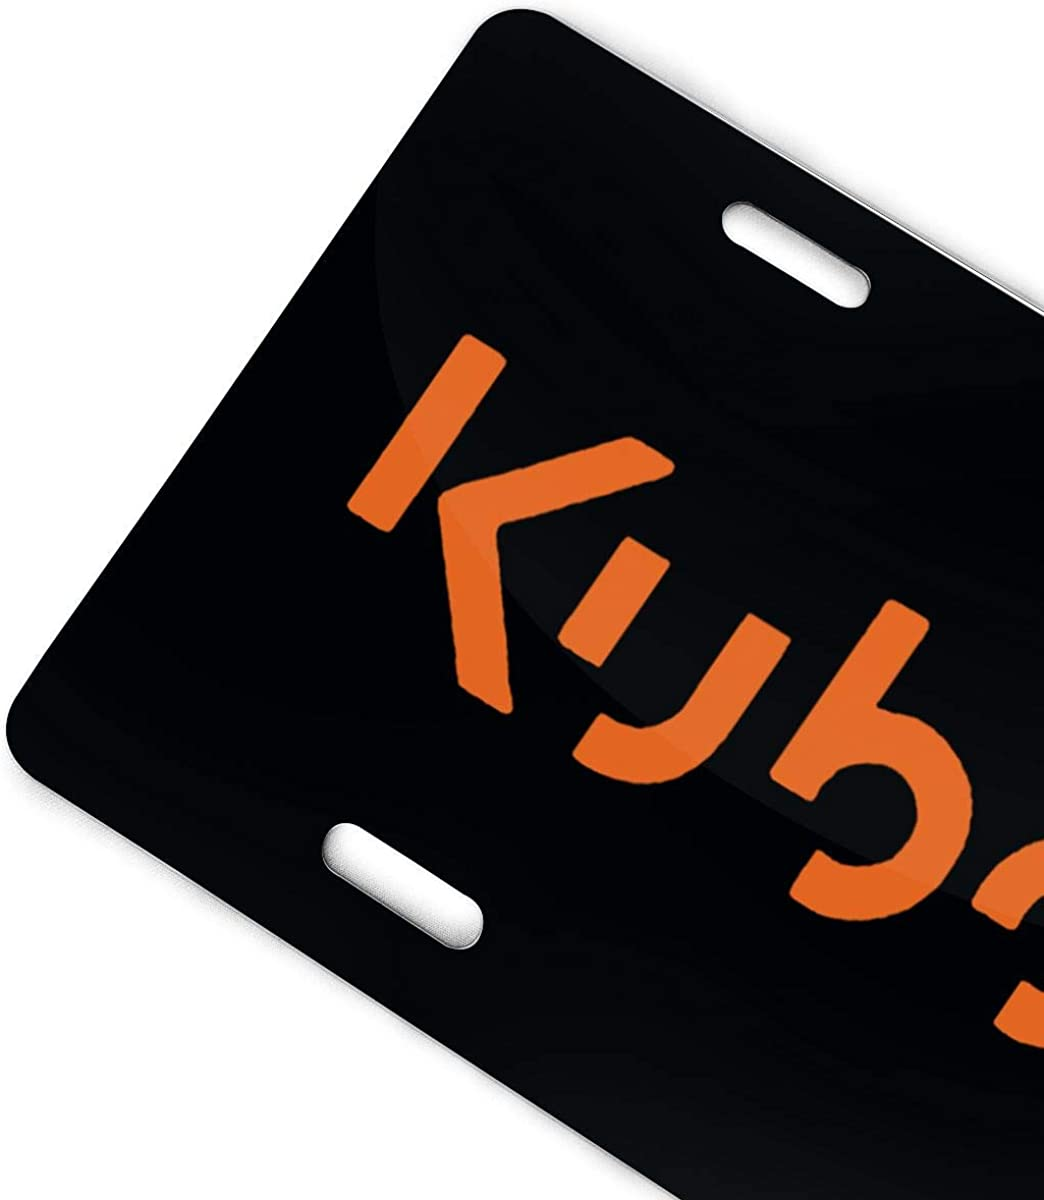 D0zopazkw Kubota Tractor Orange Logo Aluminum License Plate Cover for Car License Plate Cover with 4 Holes Car Tag 6x 12